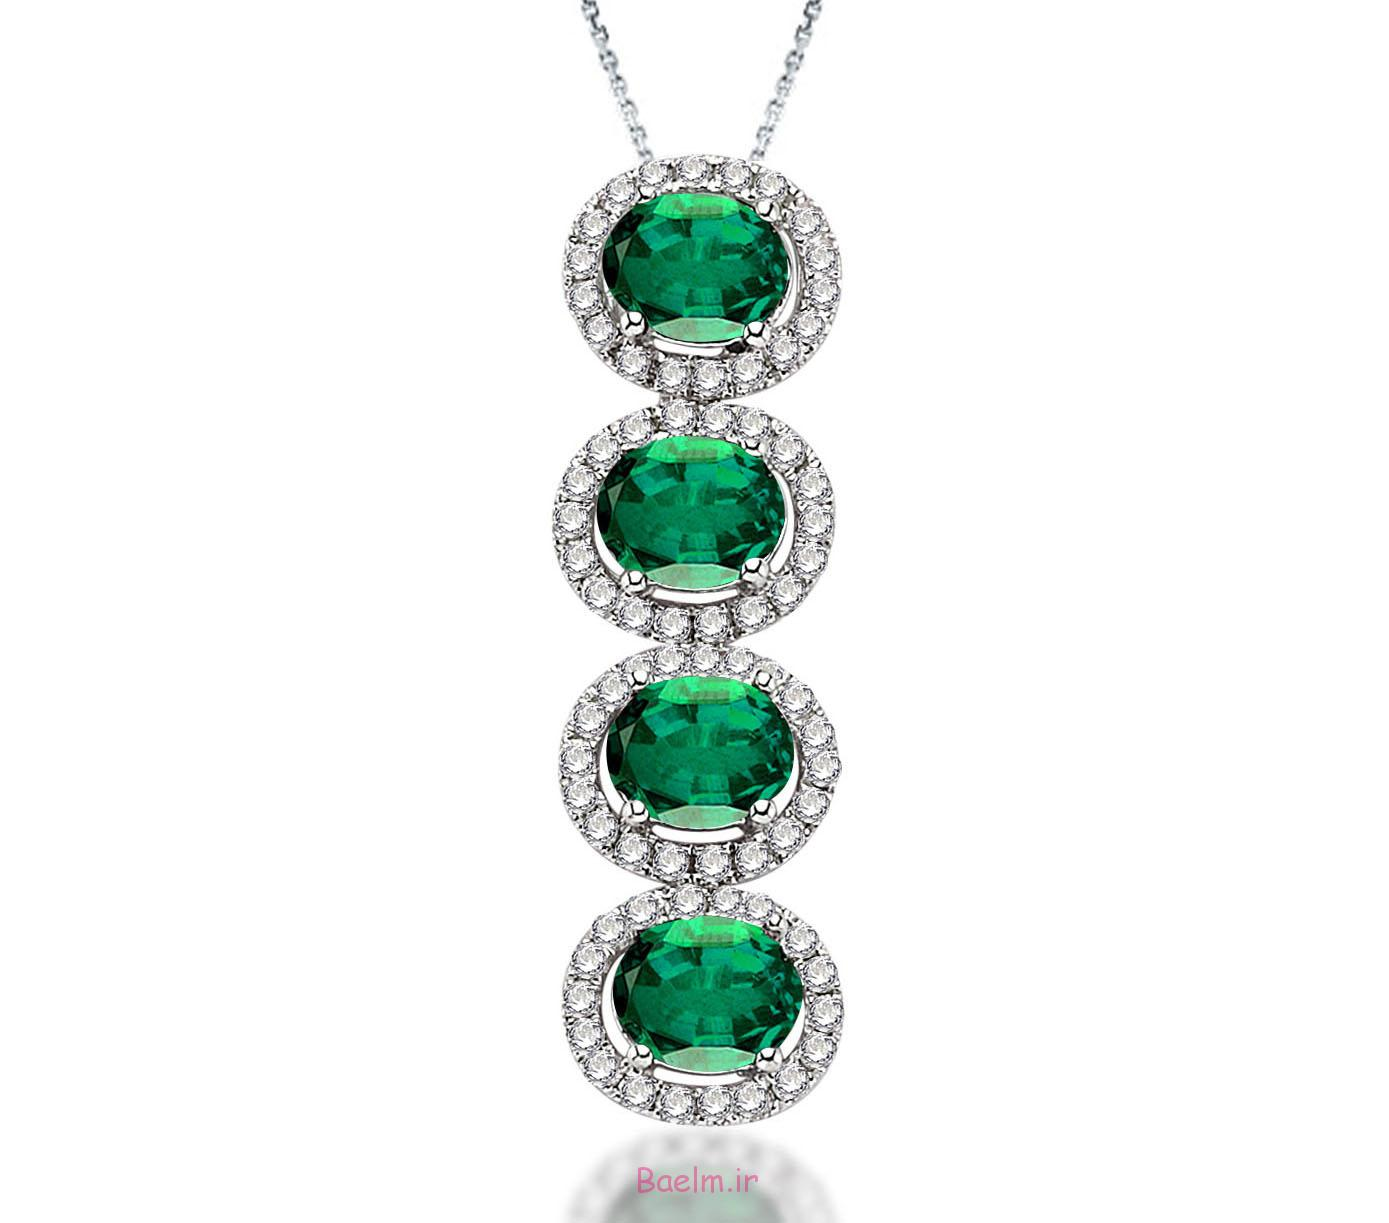 emerald necklace designs 7 Emerald Necklace Designs